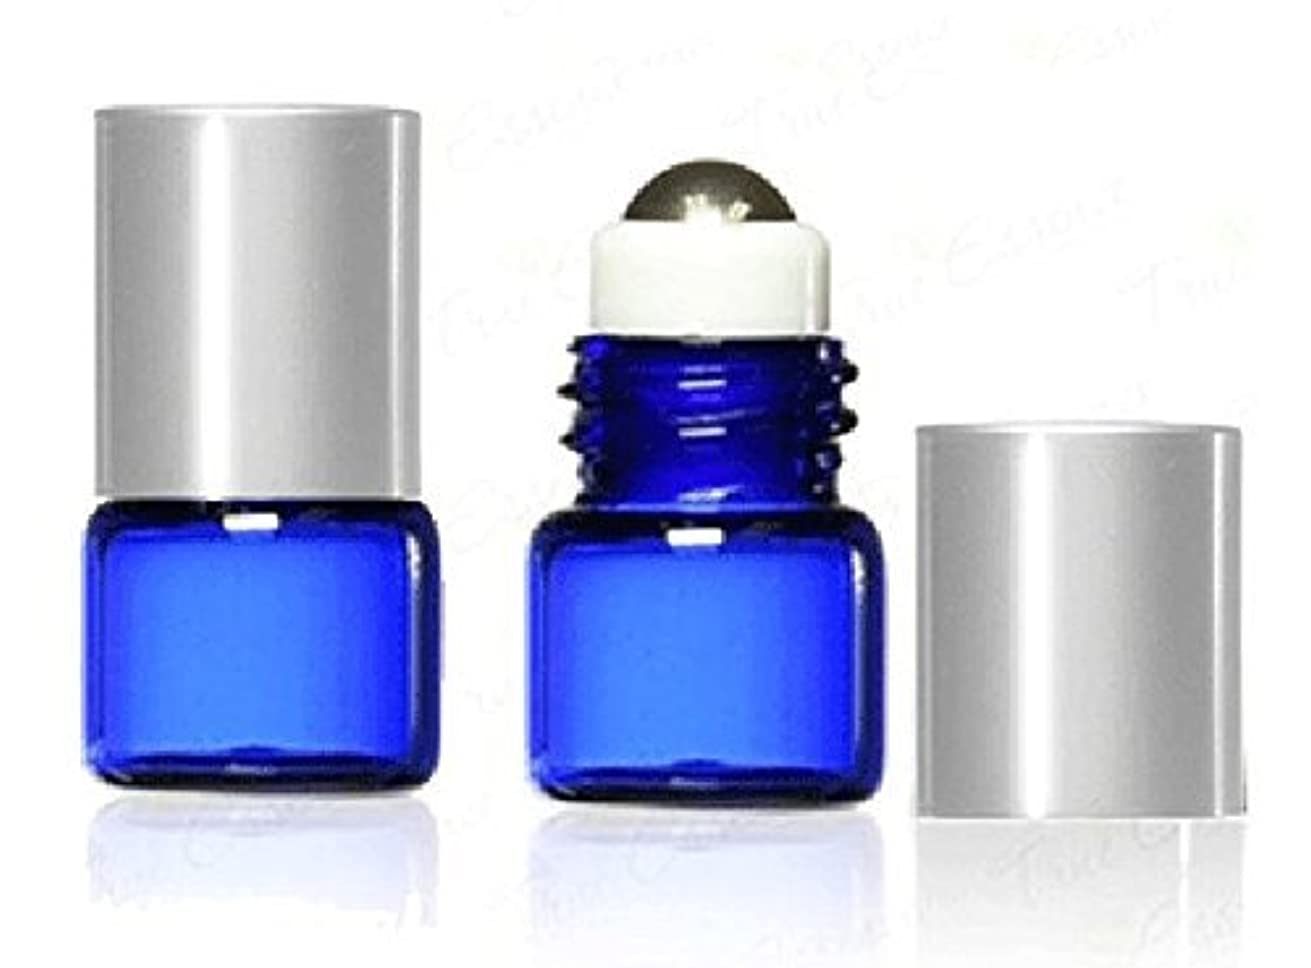 誠意モデレータ生じるGrand Parfums 1 ml, 1/4 Dram Cobalt Blue Glass Micro Mini 1ml Roll-on Glass Bottles with Metal Roller Balls &...